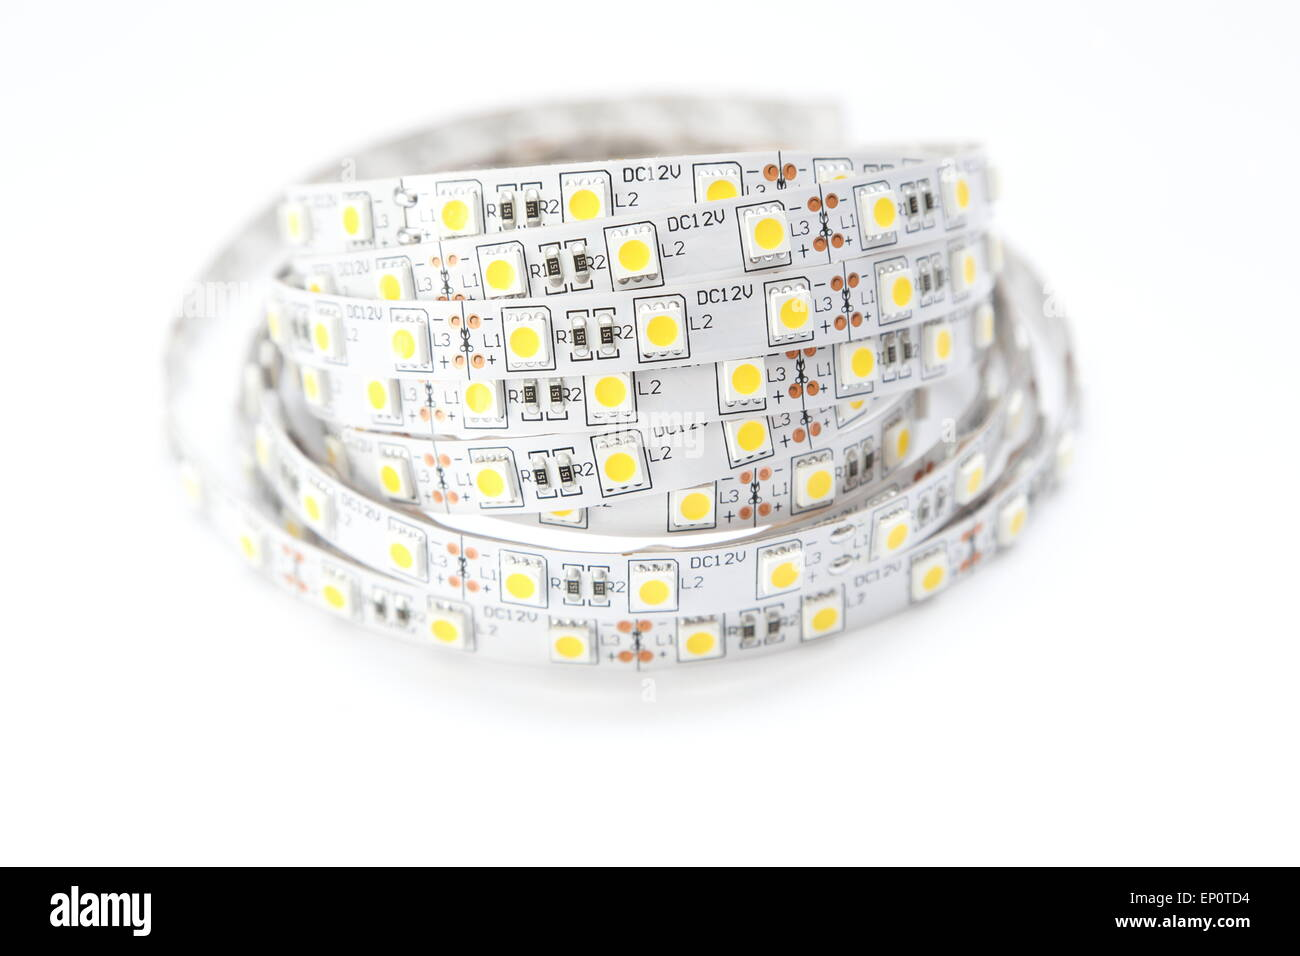 Long strip of LEDs. The LEDs allow for a great illumination with a low consumption of electricity. - Stock Image